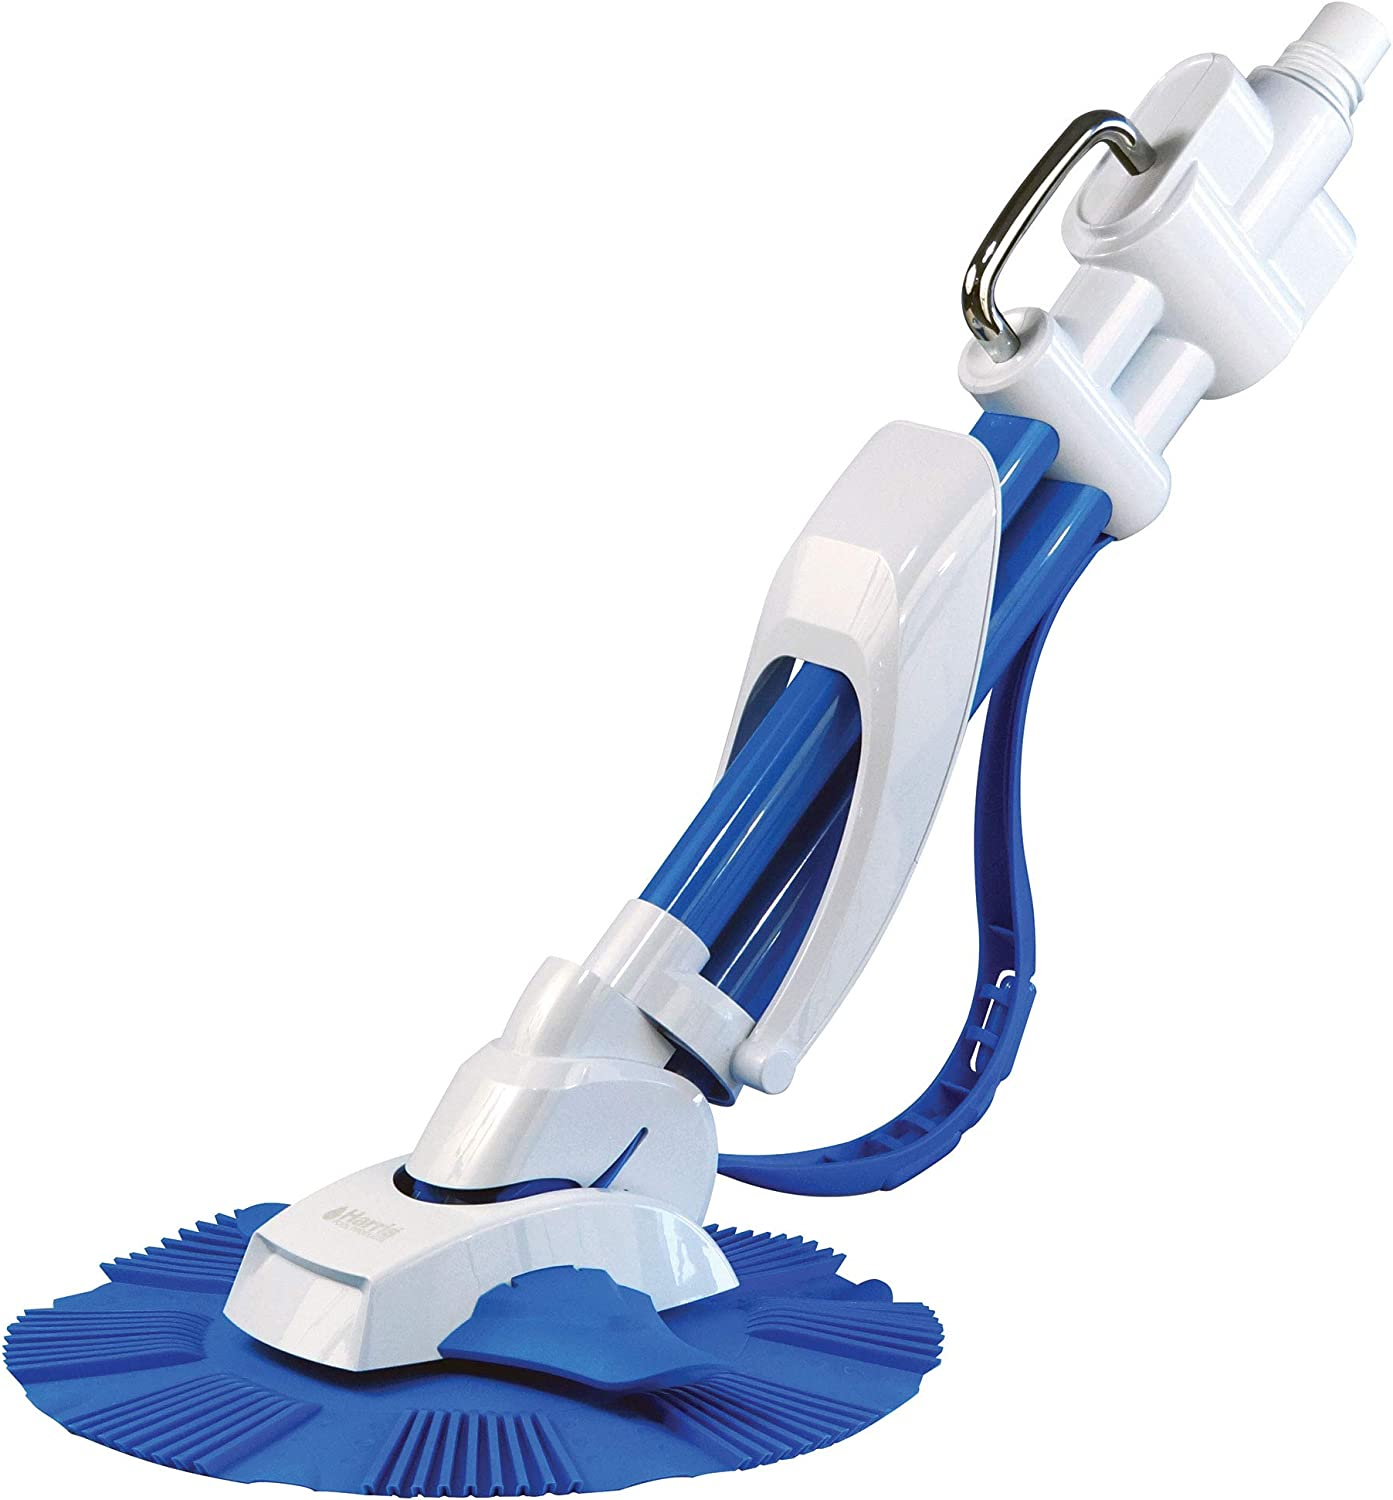 Doheny's ProVac & ProVac Plus Automatic Suction Swimming Pool Cleaners | Cleans from Waterline to Pool Bottom & Costs Up to 50% Less Than Other Suction Cleaners! (ProVac AG Above Ground)